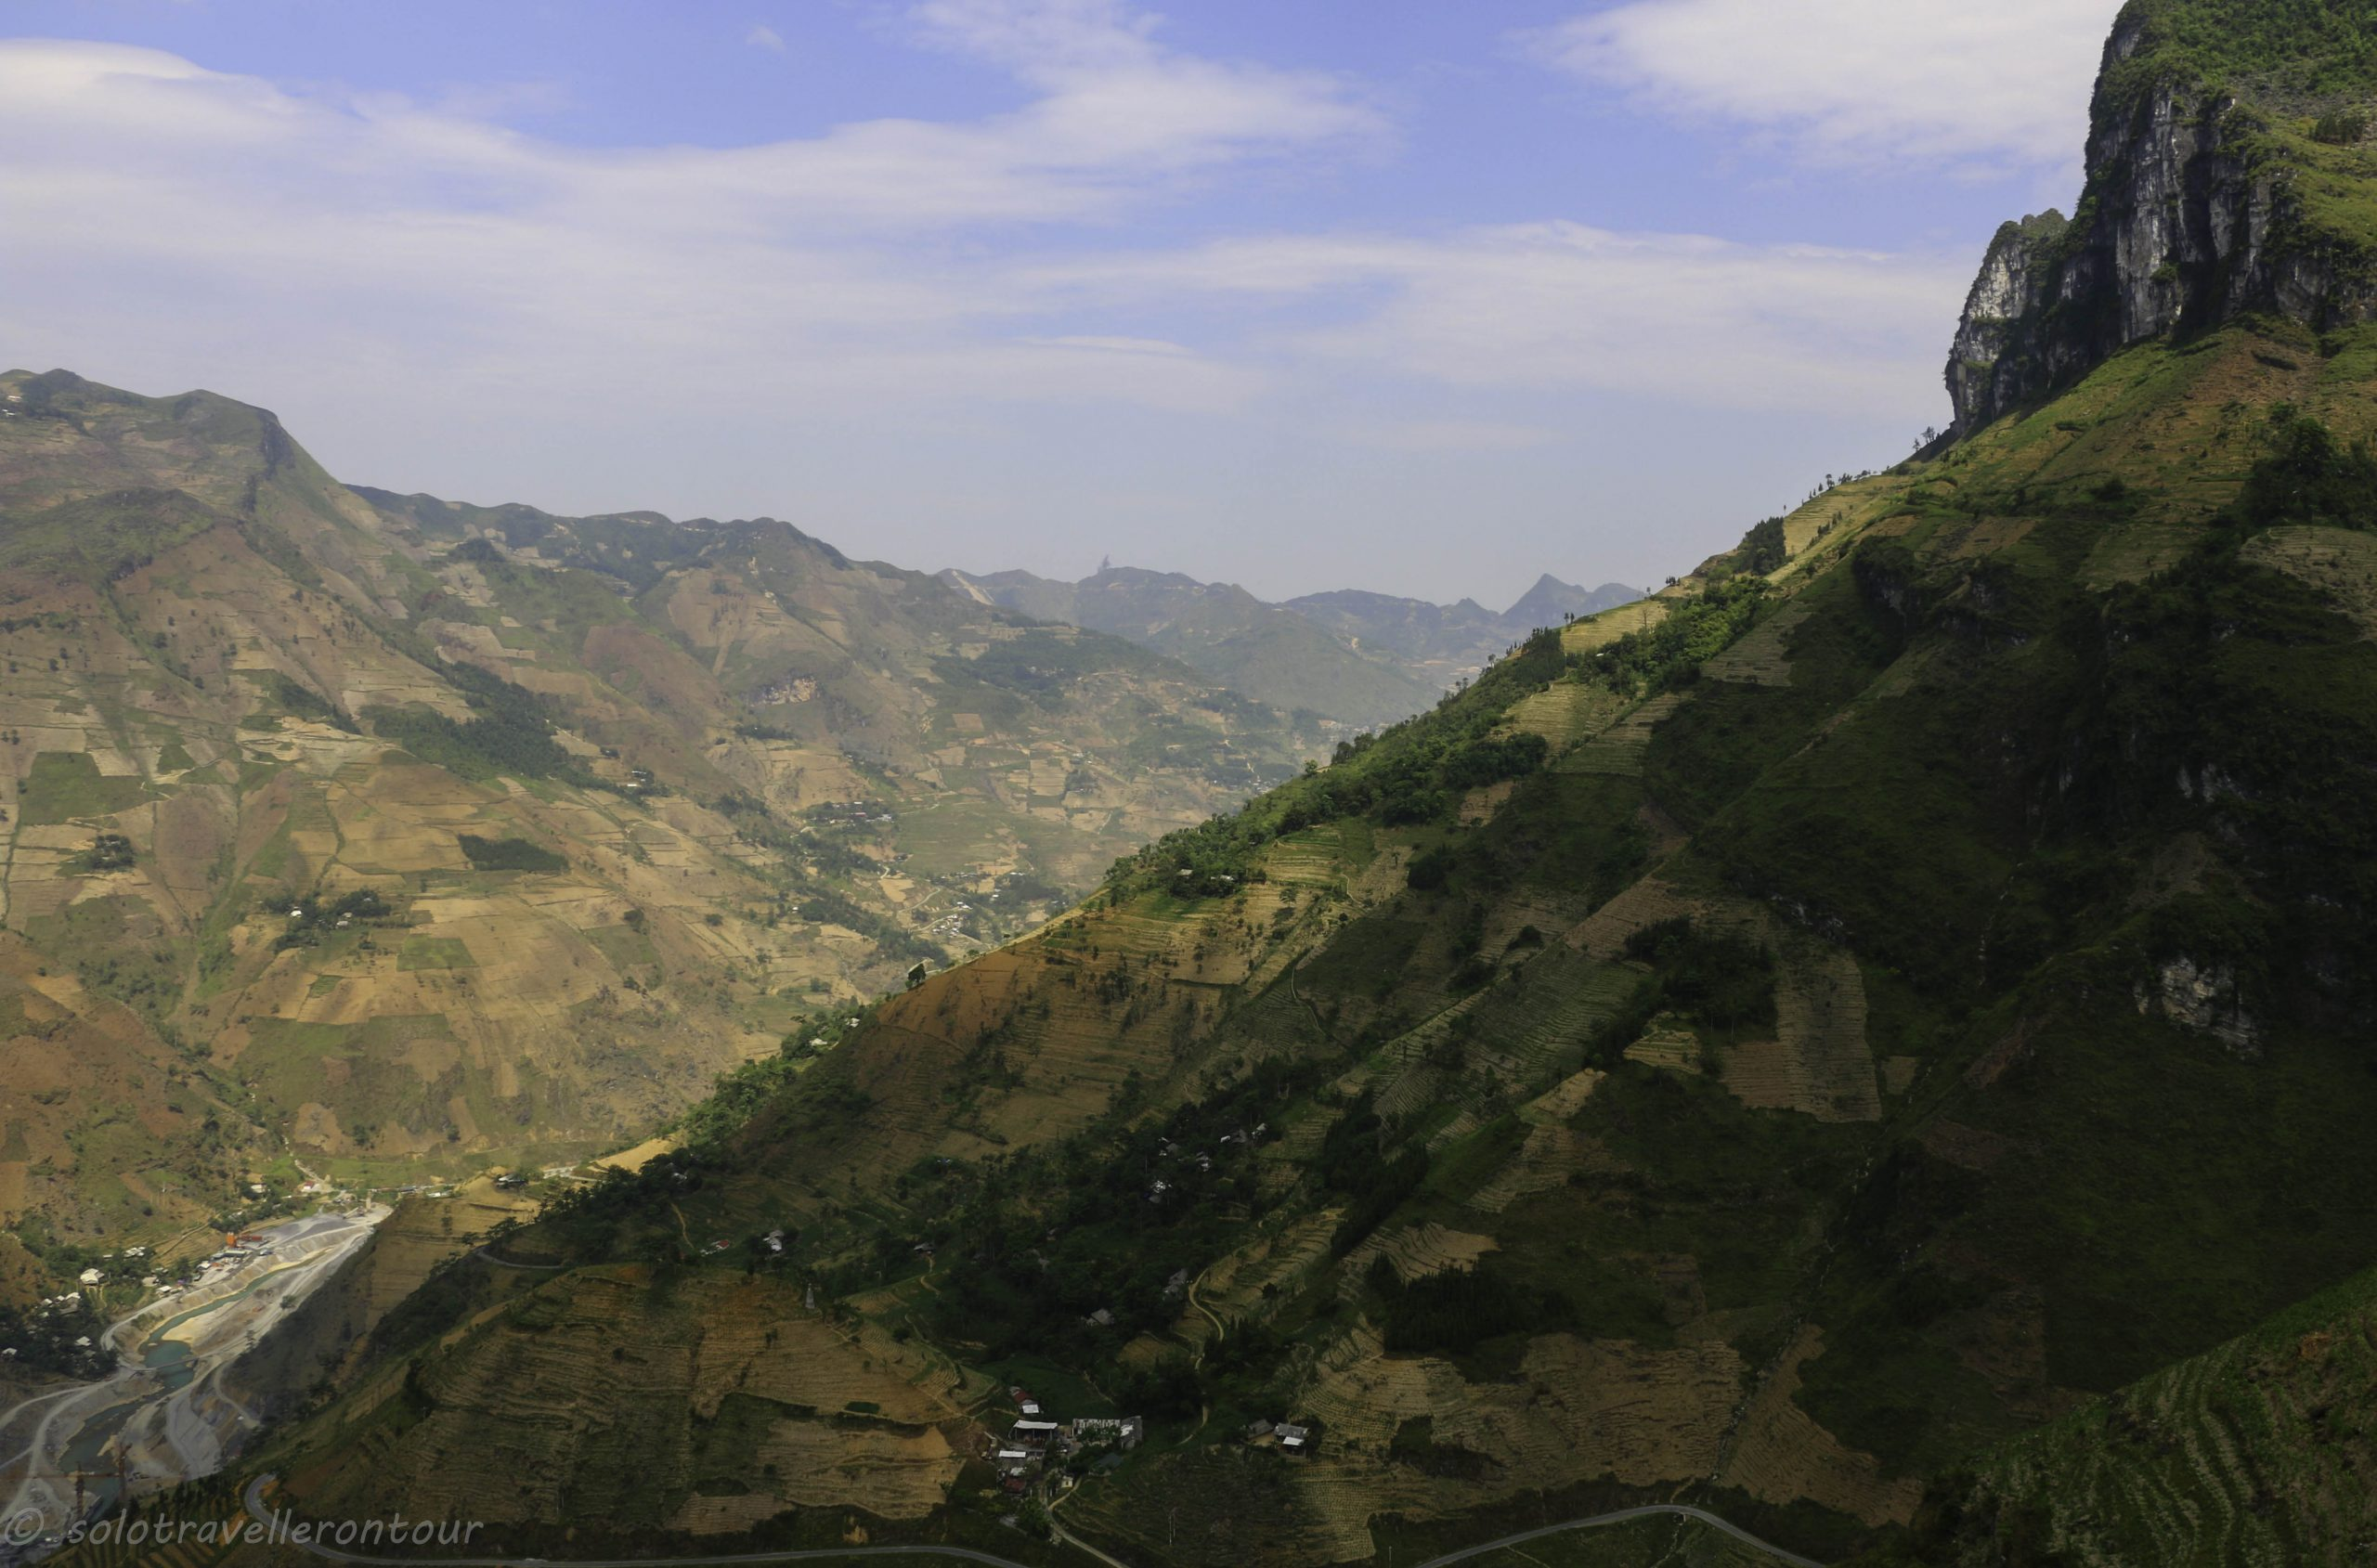 7. The Ha Giang Loop without Ha Giang